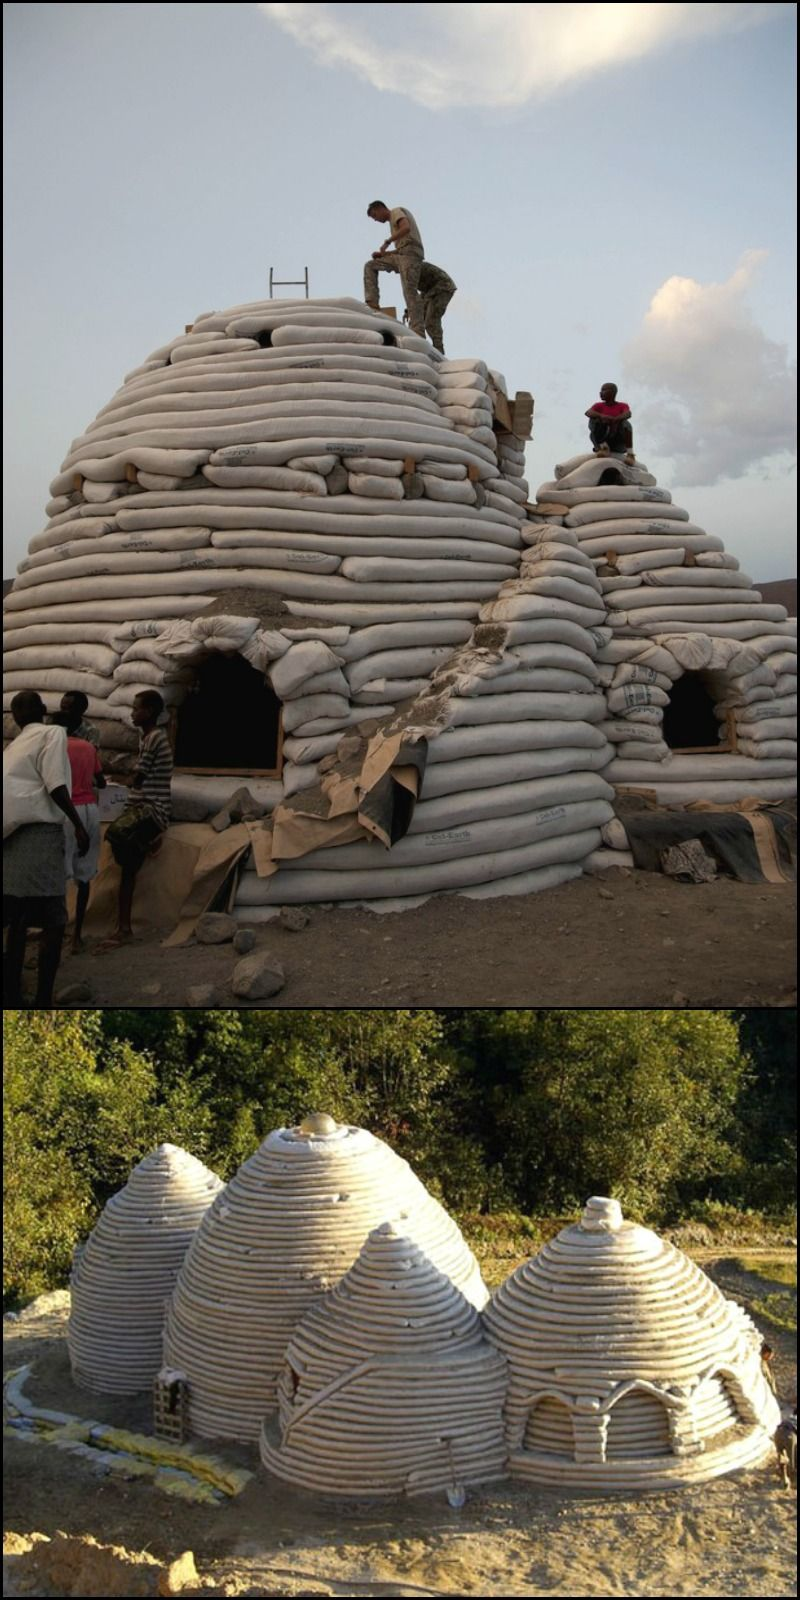 Superadobe Fluid Surprisingly Easy Immensely Strong And Low Cost Build A Guest Room A Home Office Or A Whole Ho Earth Bag Homes Places To Visit Field Trip